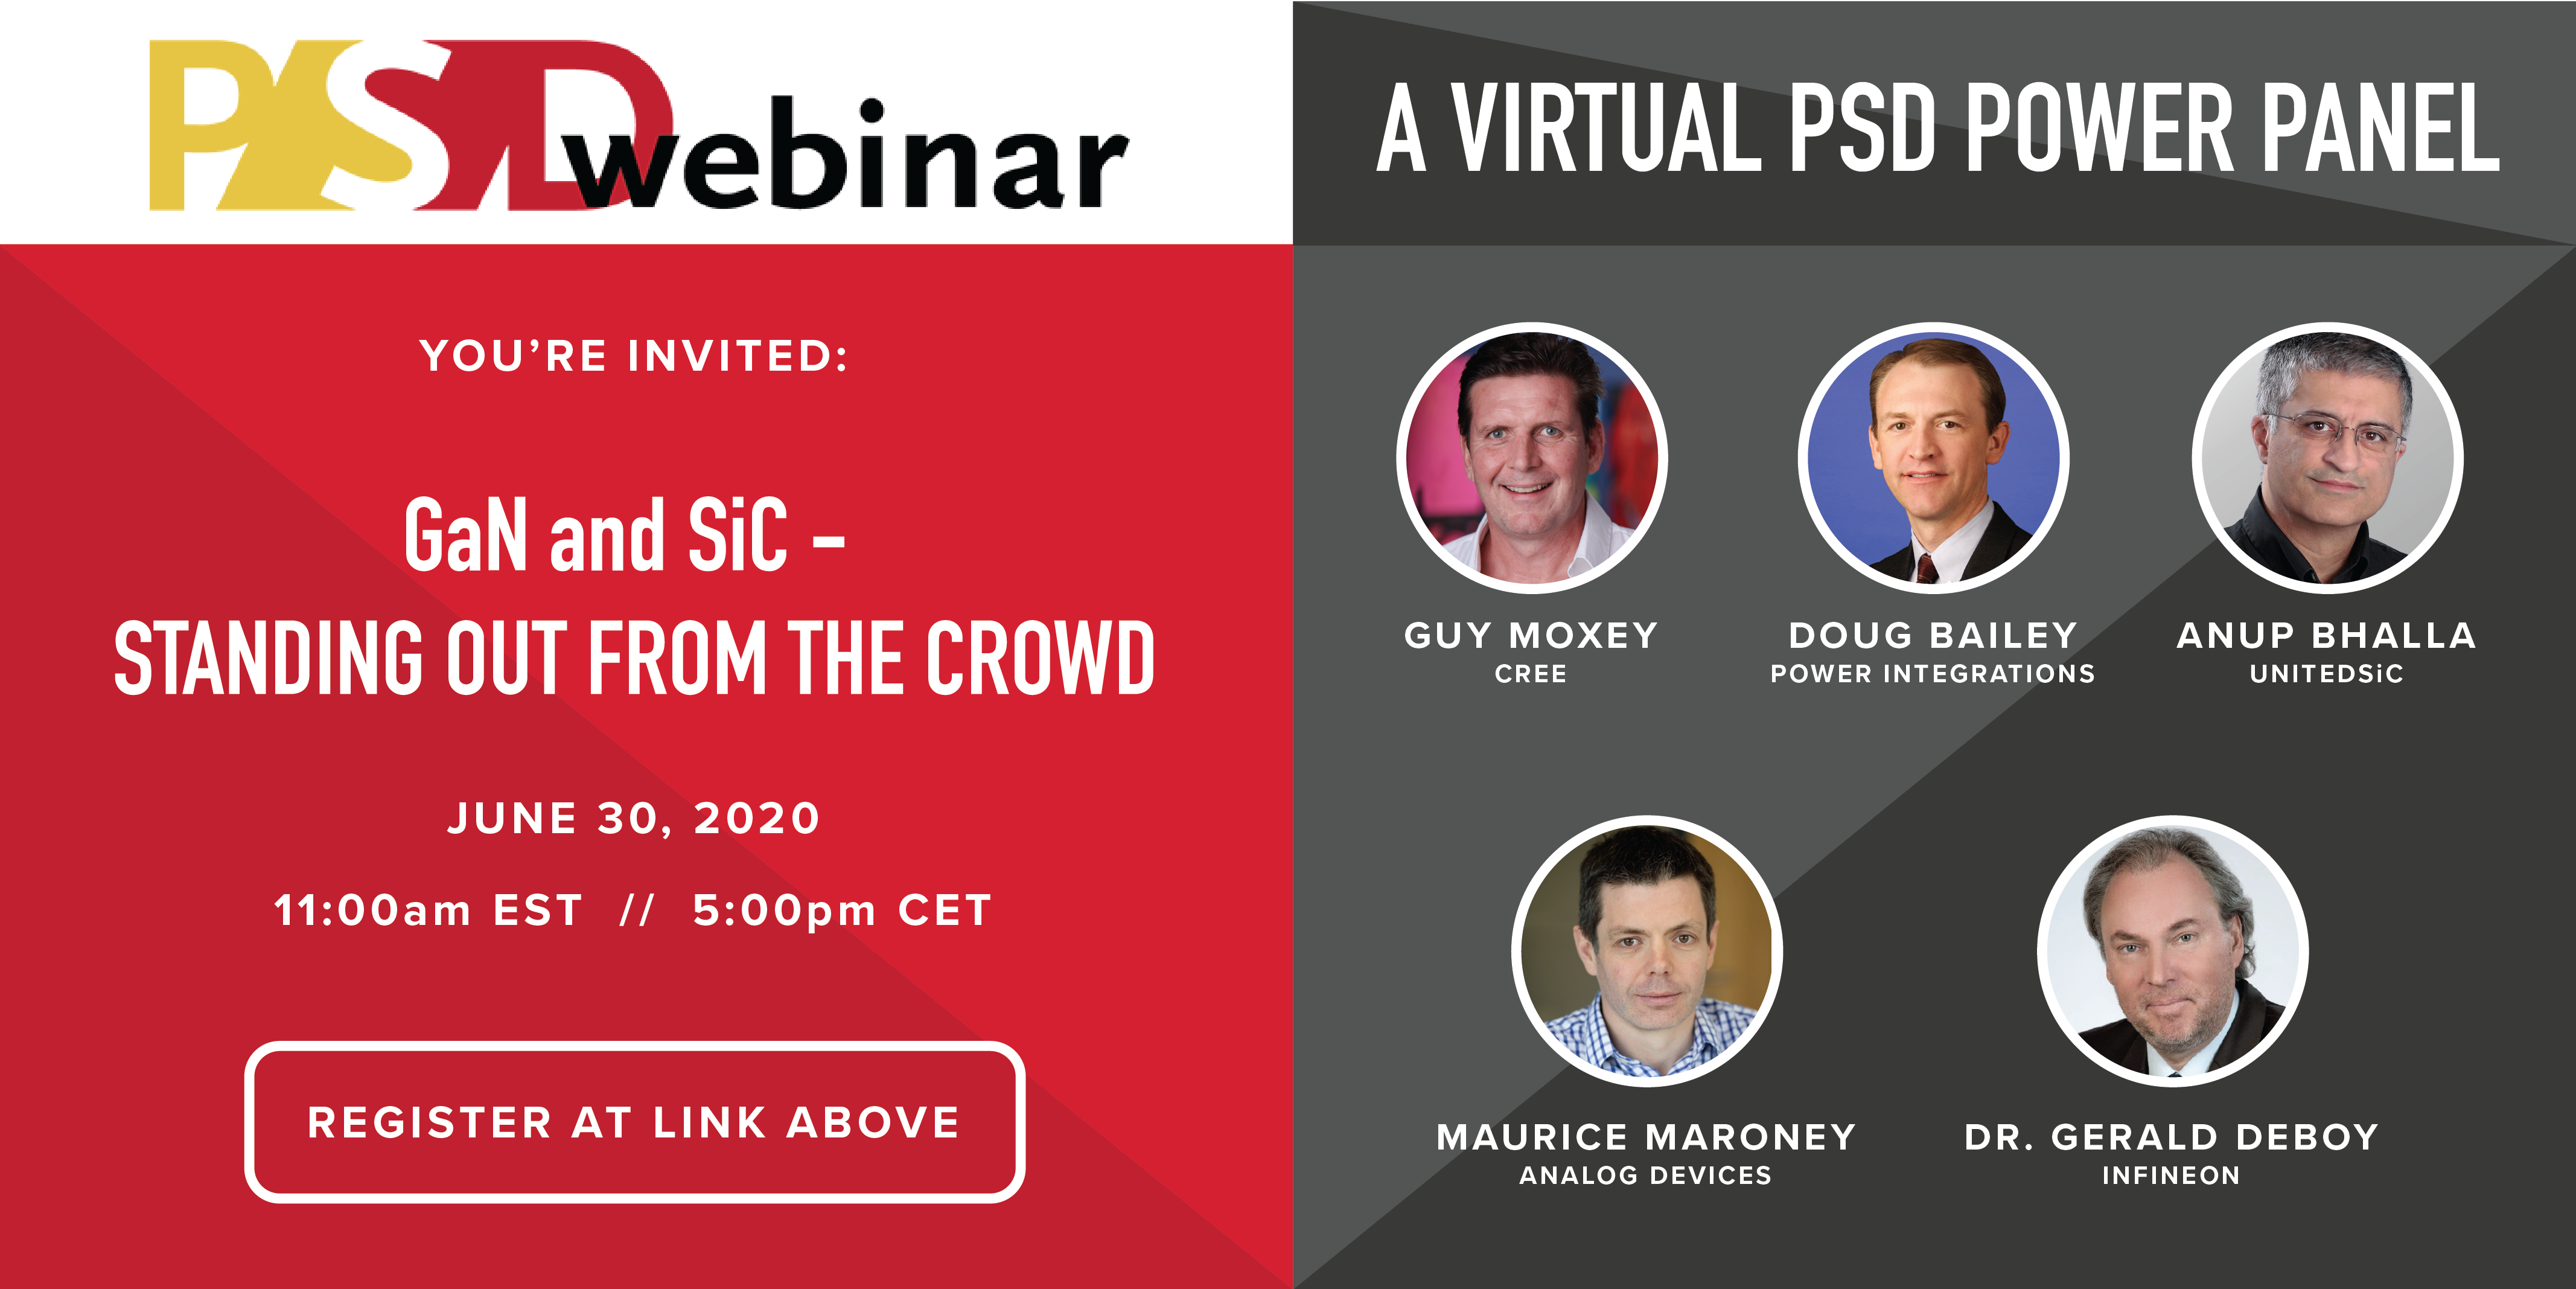 PSDwebinar Power Panel: Standing out from the Crowd